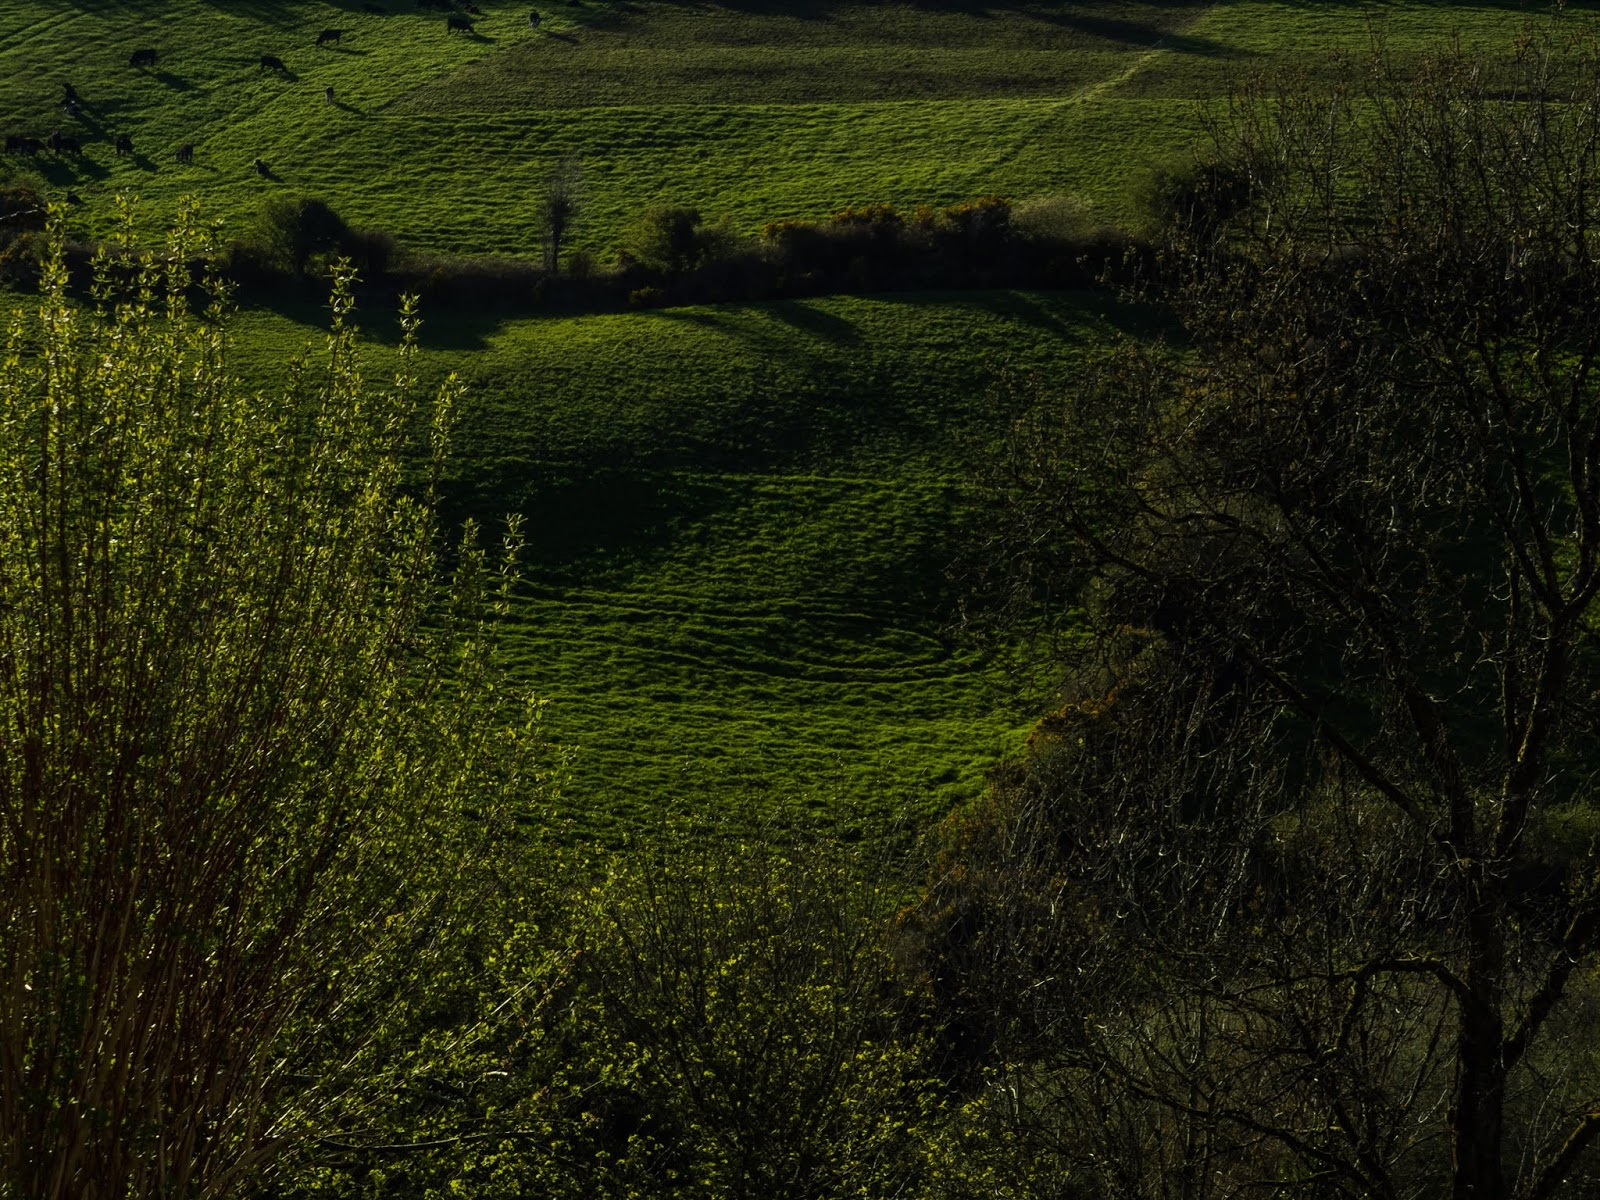 Green rolling hills at sunset casting shadows on the mountainside field.